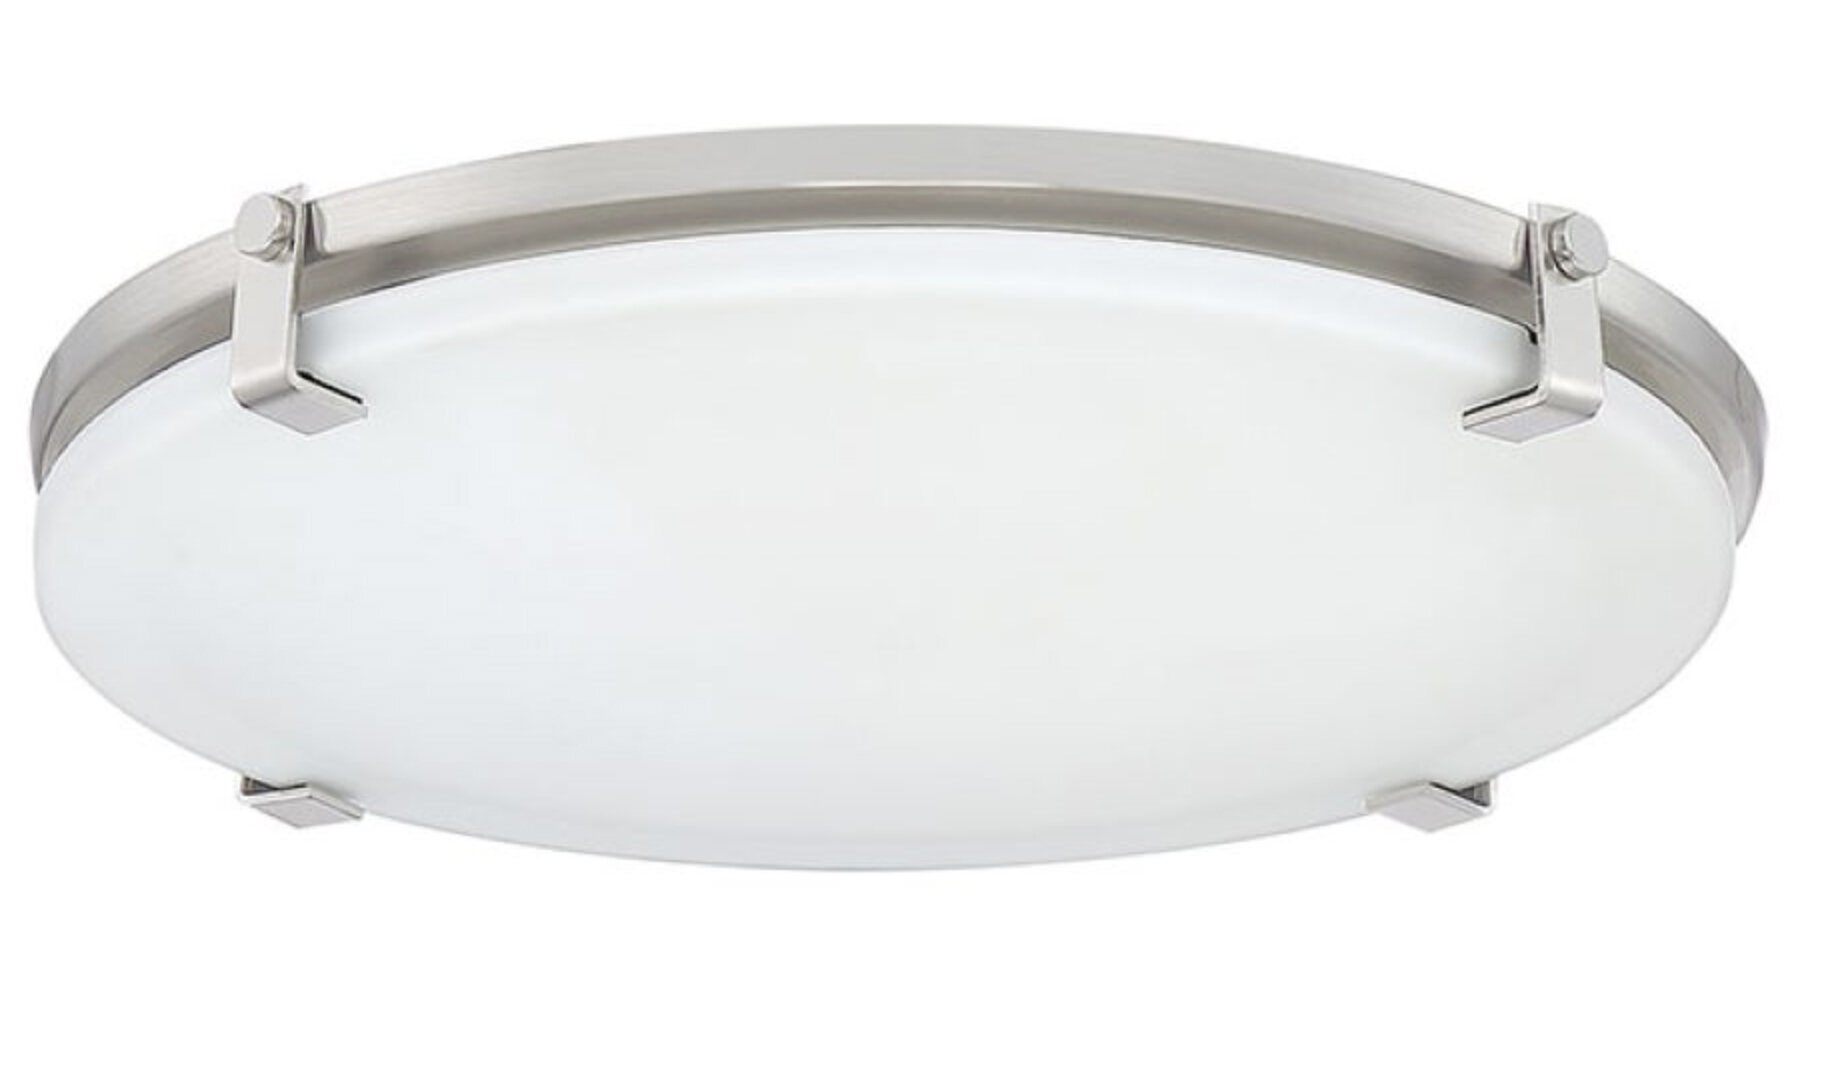 Ductless Bathroom Fans Free Shipping Over 35 Wayfair